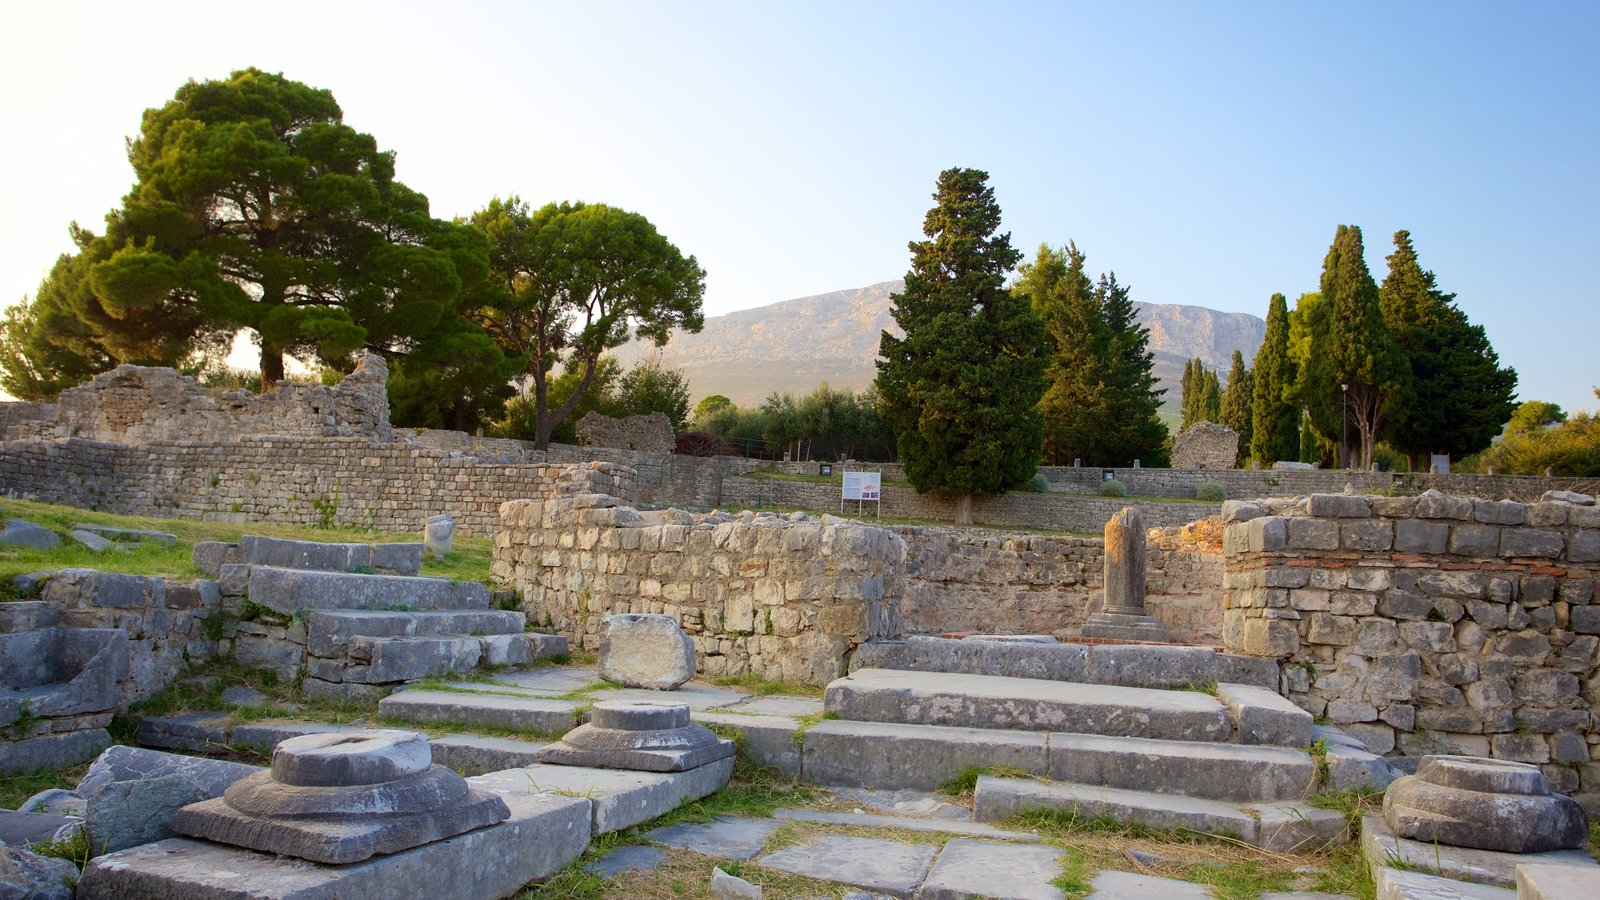 Salona Ruins which includes heritage elements and building ruins